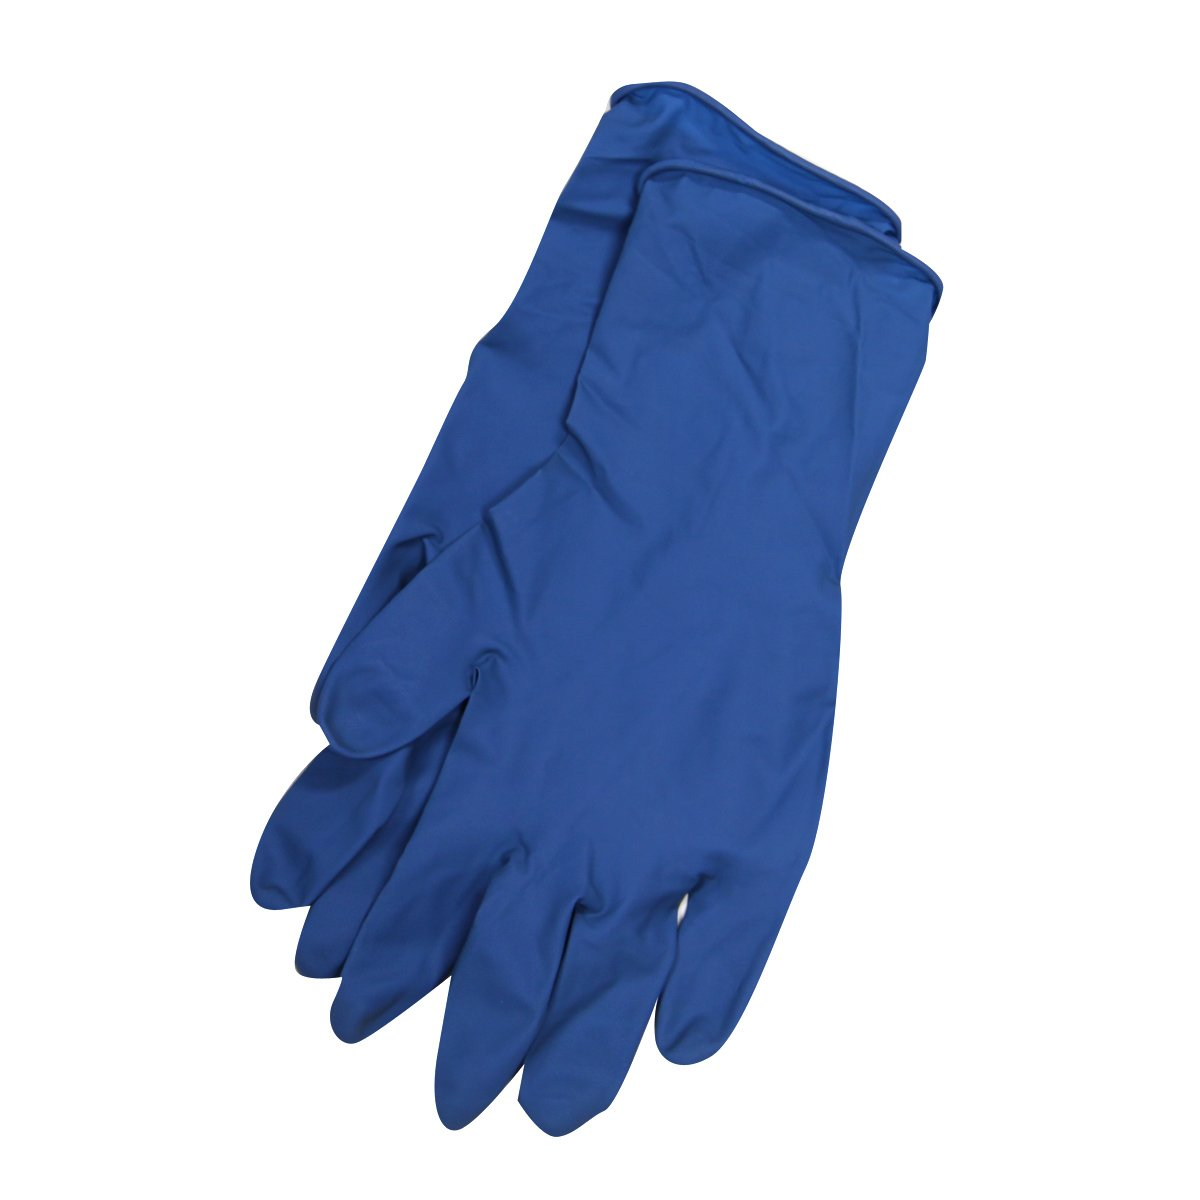 Trimaco 01917 Latex Gloves, 50 Count- Blue by Trimaco